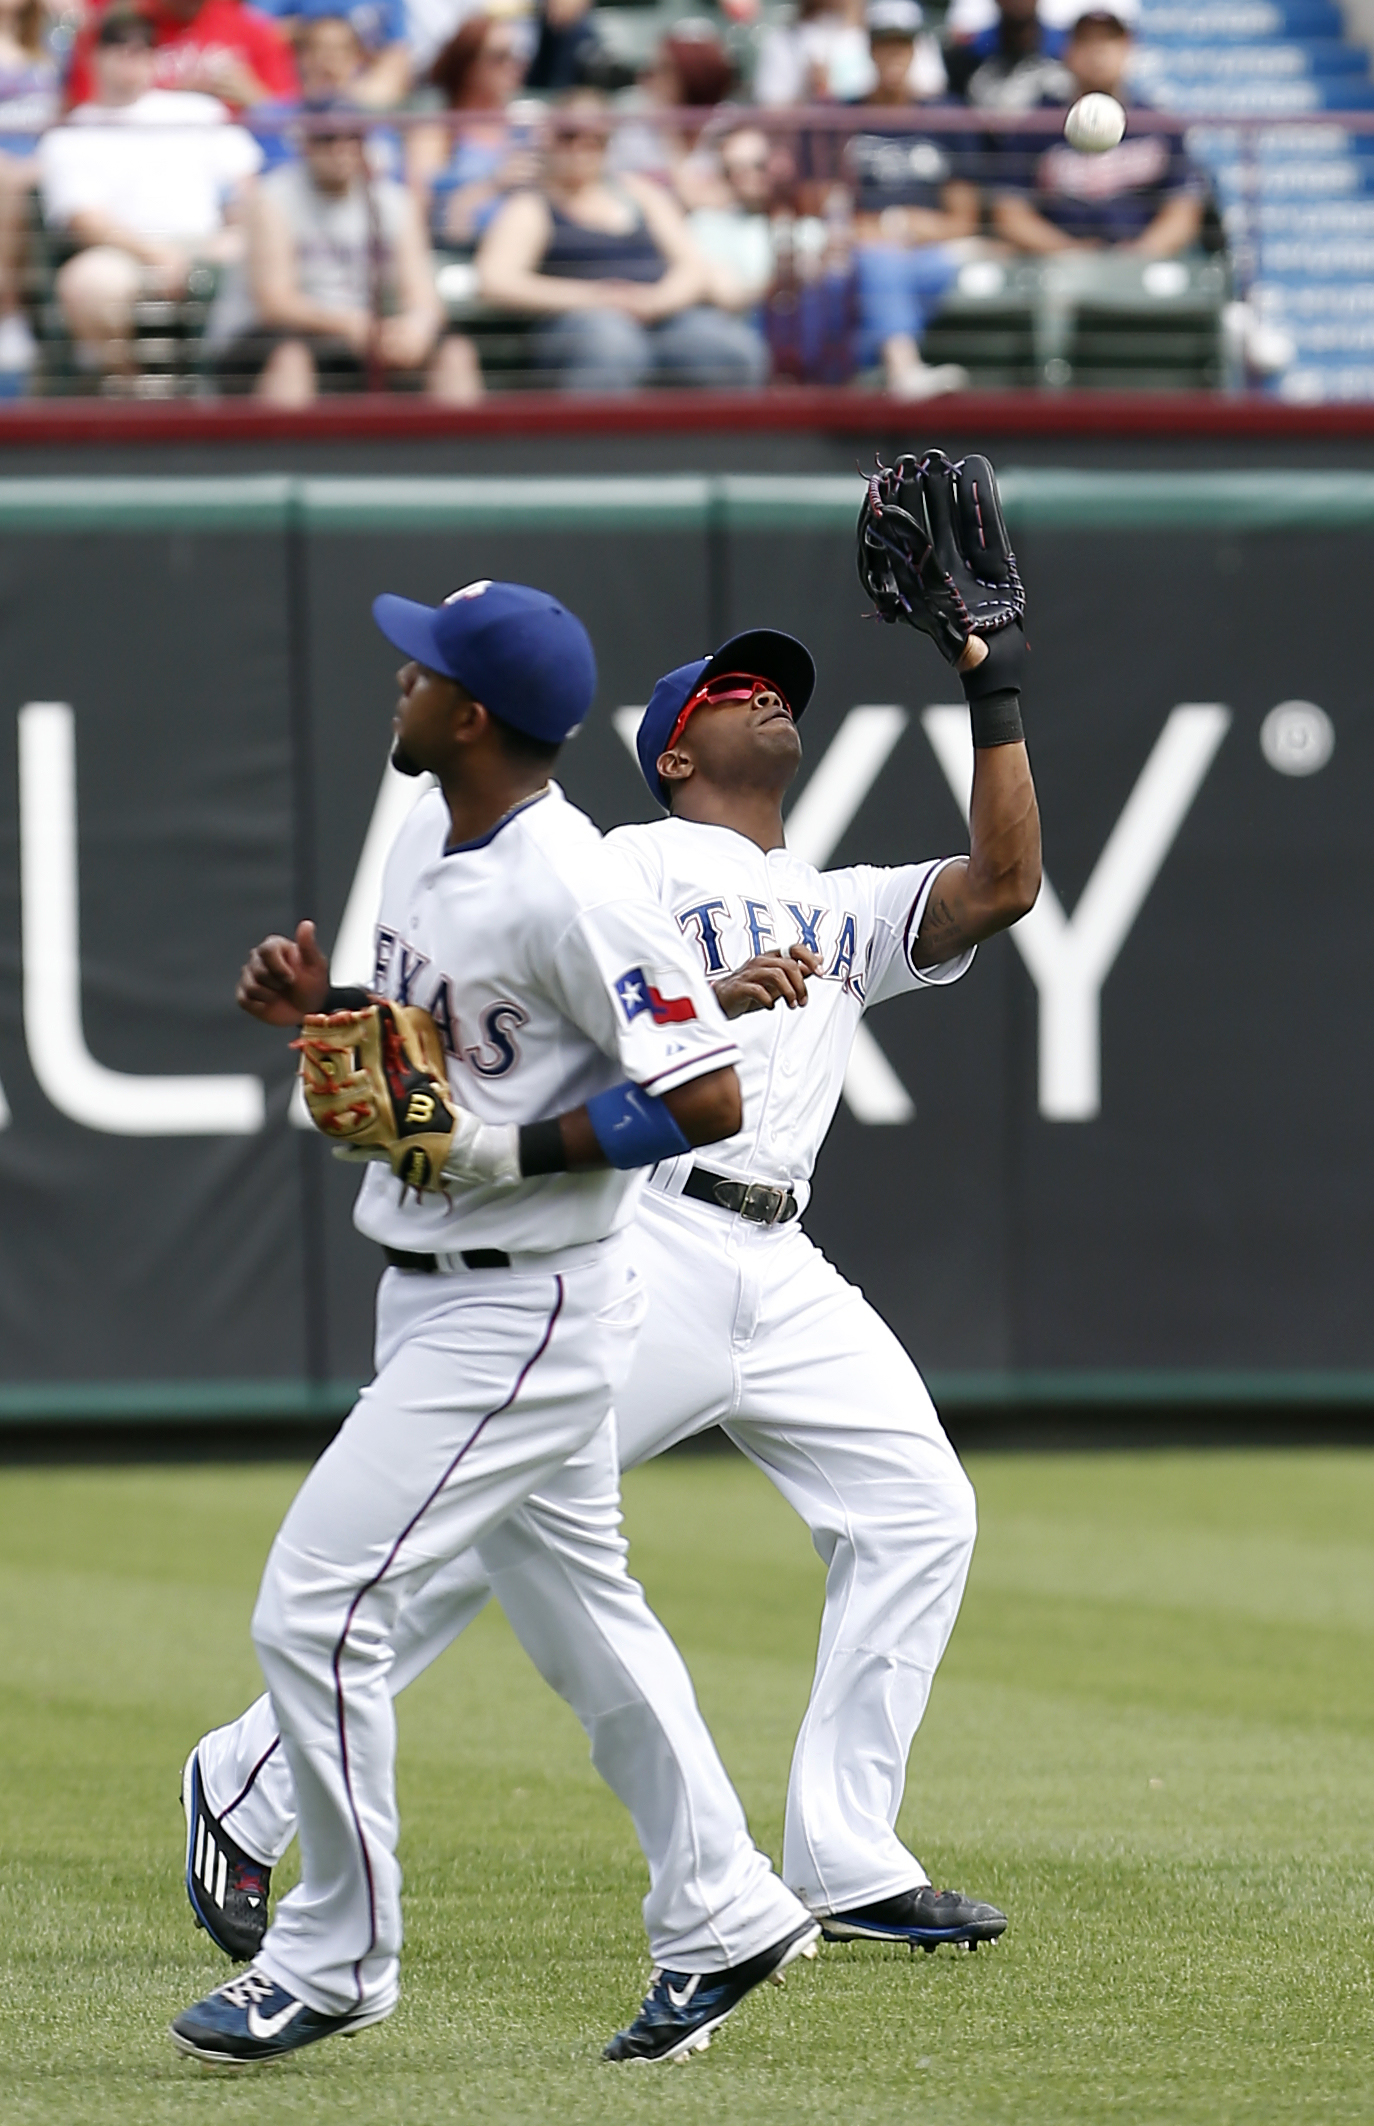 Texas Rangers shortstop Elvis Andrus, left, looks on as left fielder Delino DeShields, right, catches a fly-out hit by Cleveland Indians' Jason Kipnis during the sixth inning of a baseball game, Sunday, May 17, 2015, in Arlington, Texas. (AP Photo/Brandon